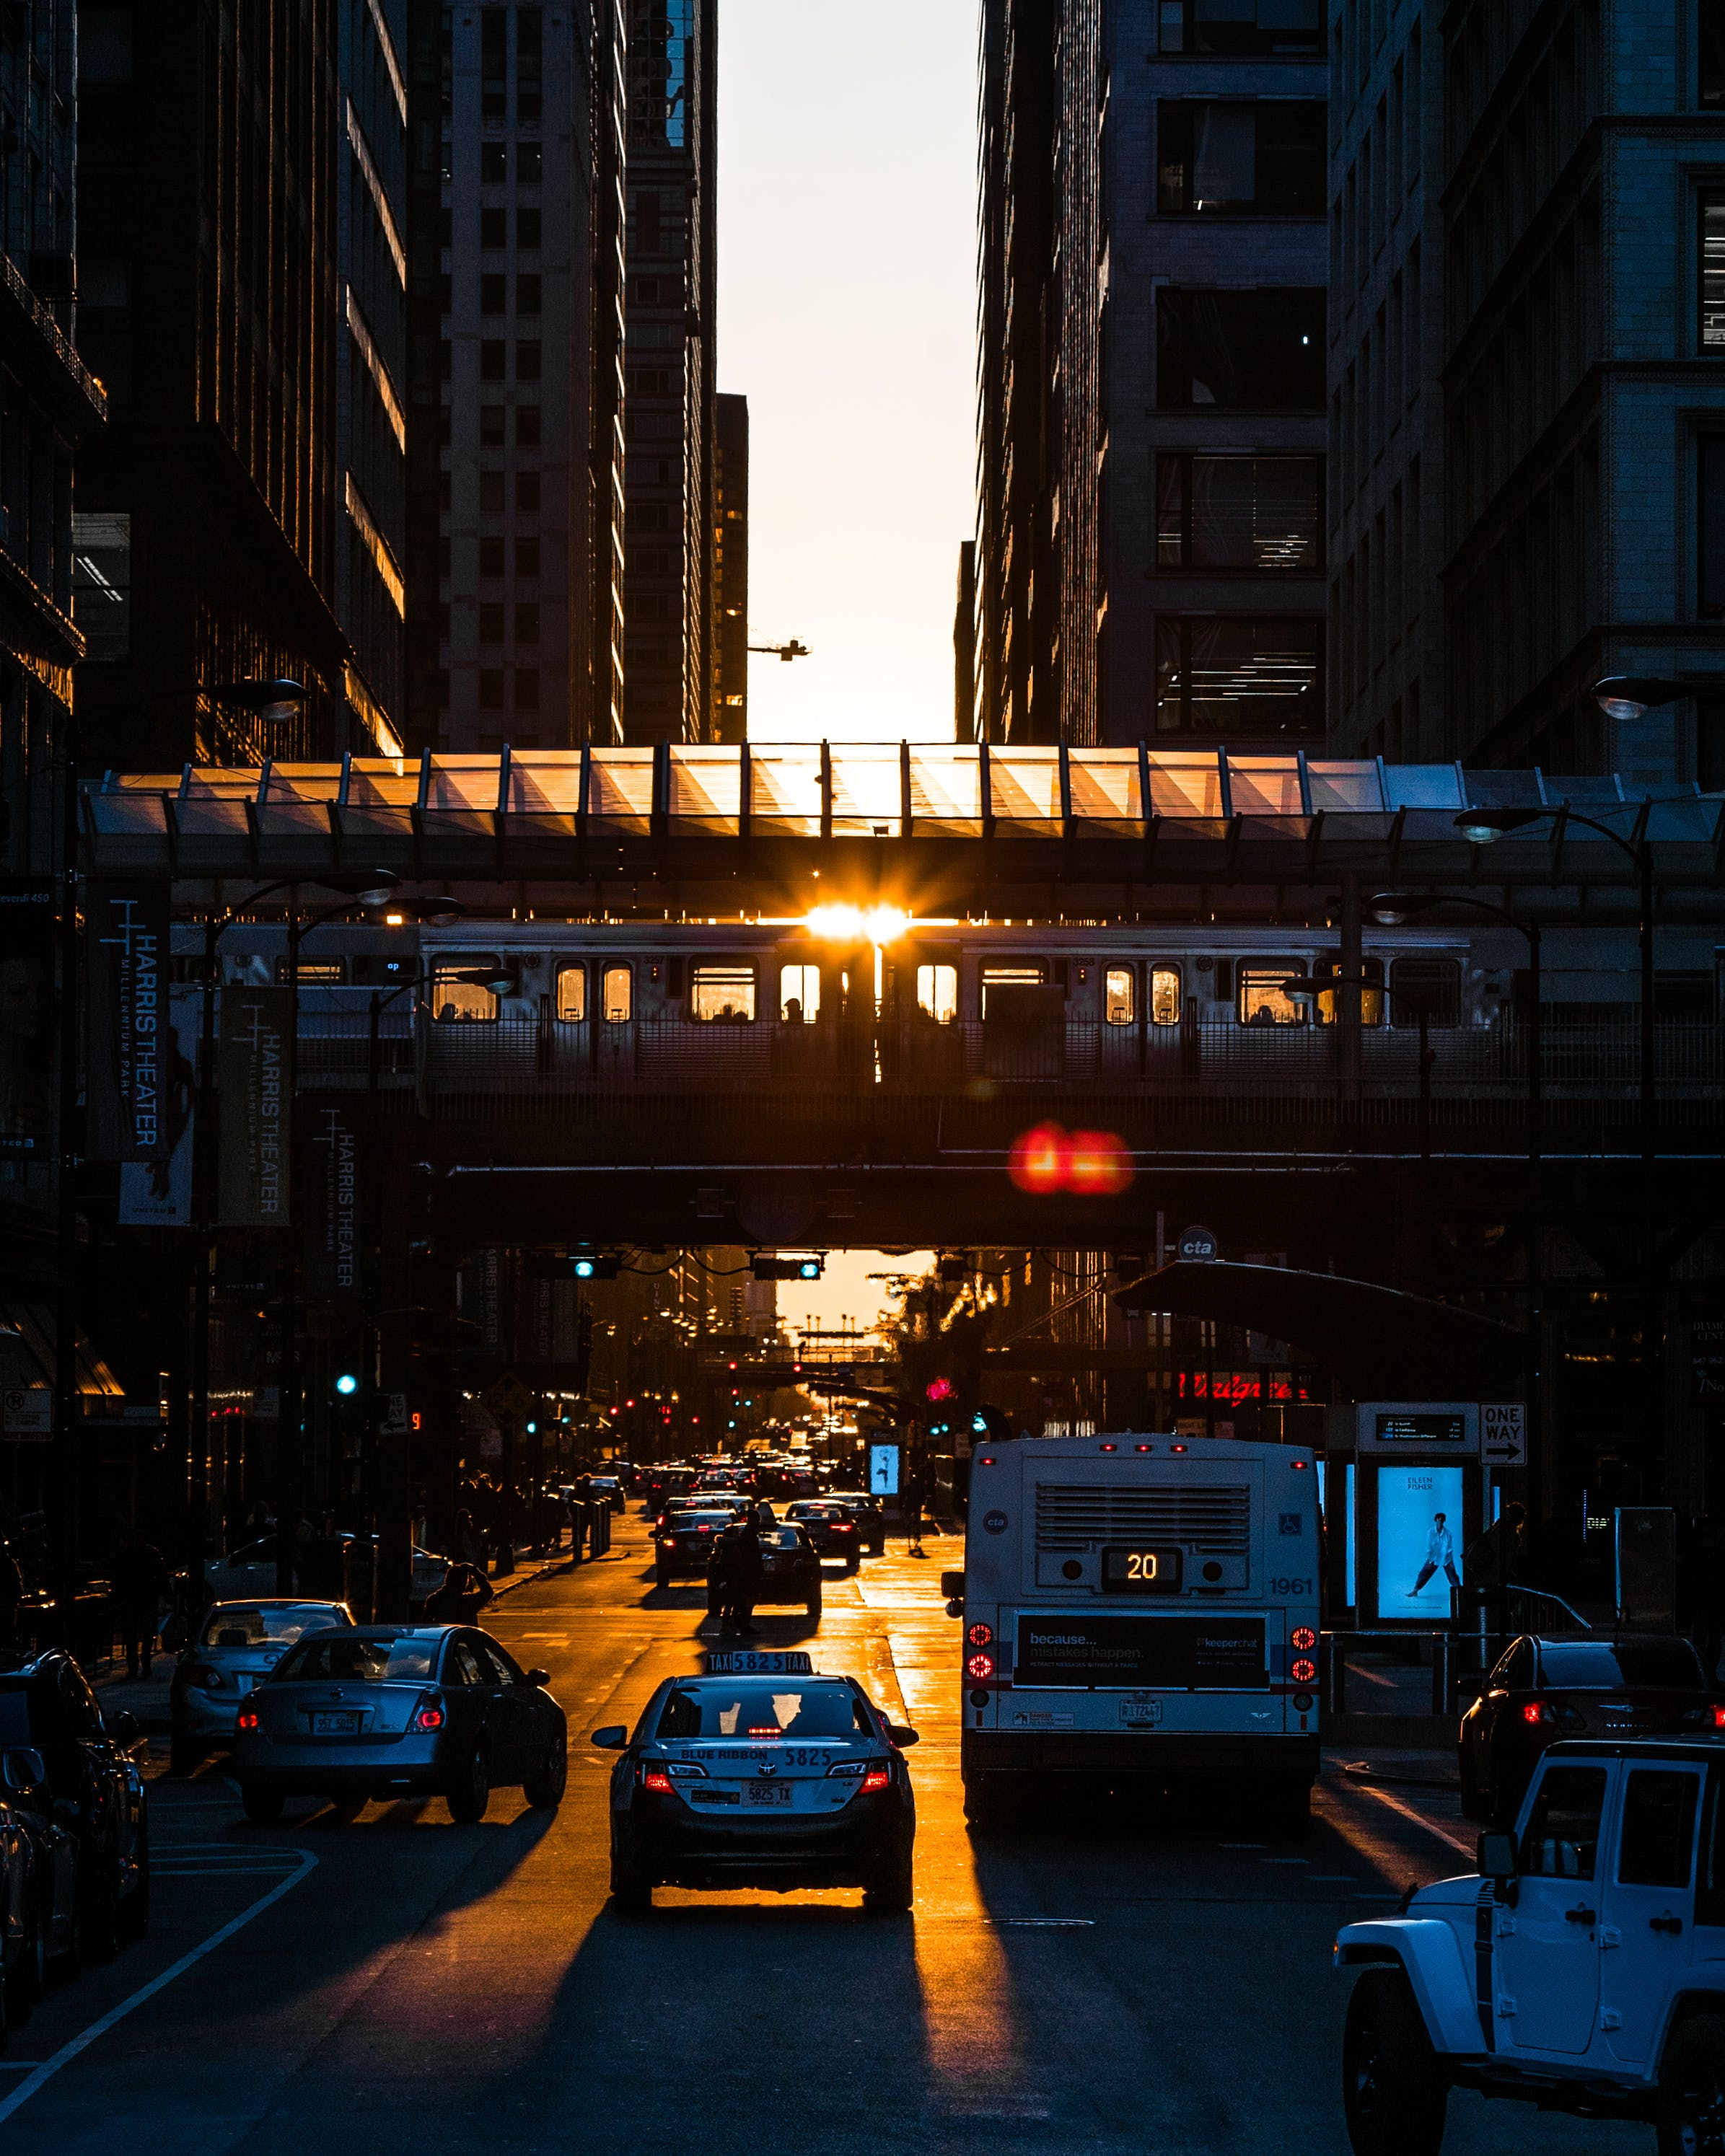 Vehicles on Street during Golden Hour